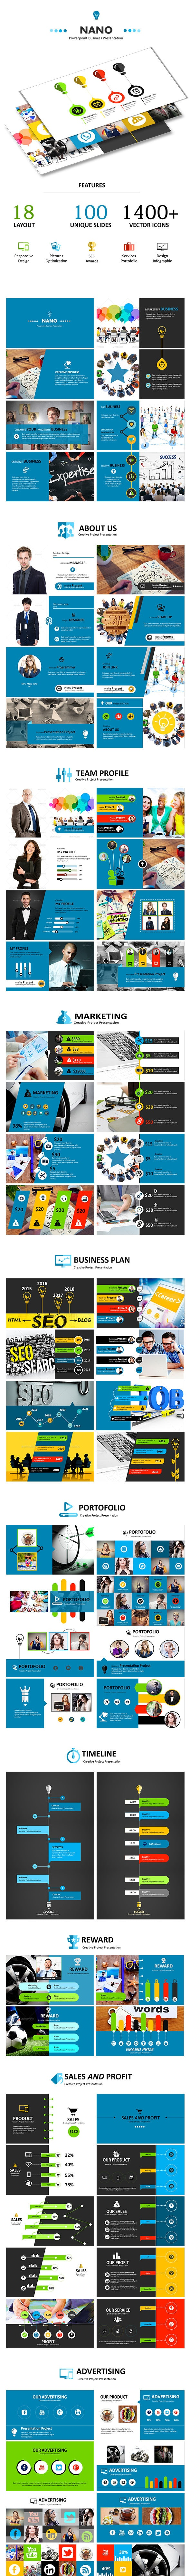 NANO - Powerpoint Business Presentation - Abstract PowerPoint Templates